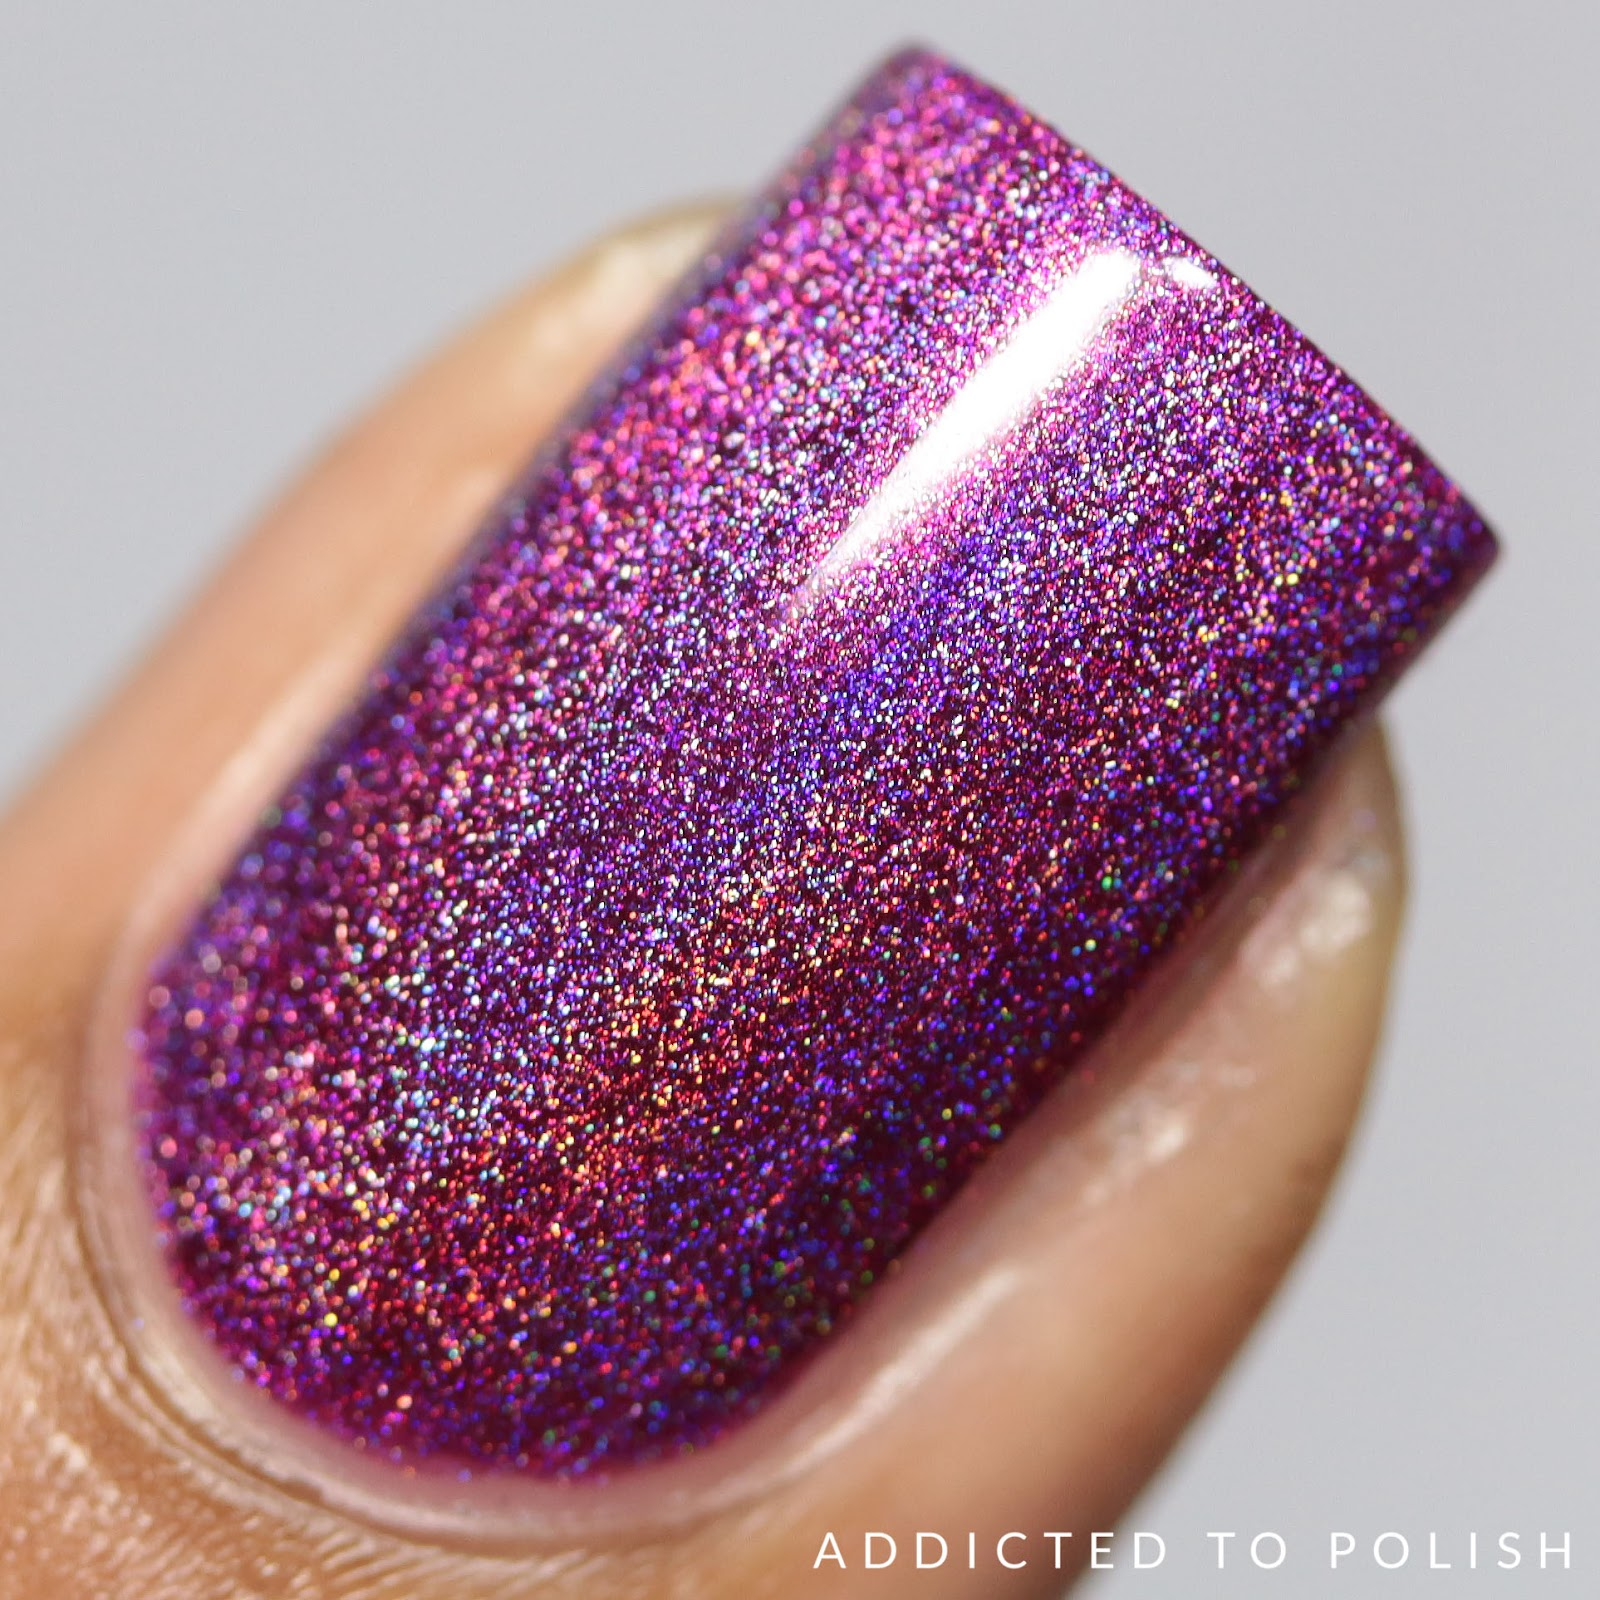 KBShimmer Tall Pink of Water Hella Holo Customs